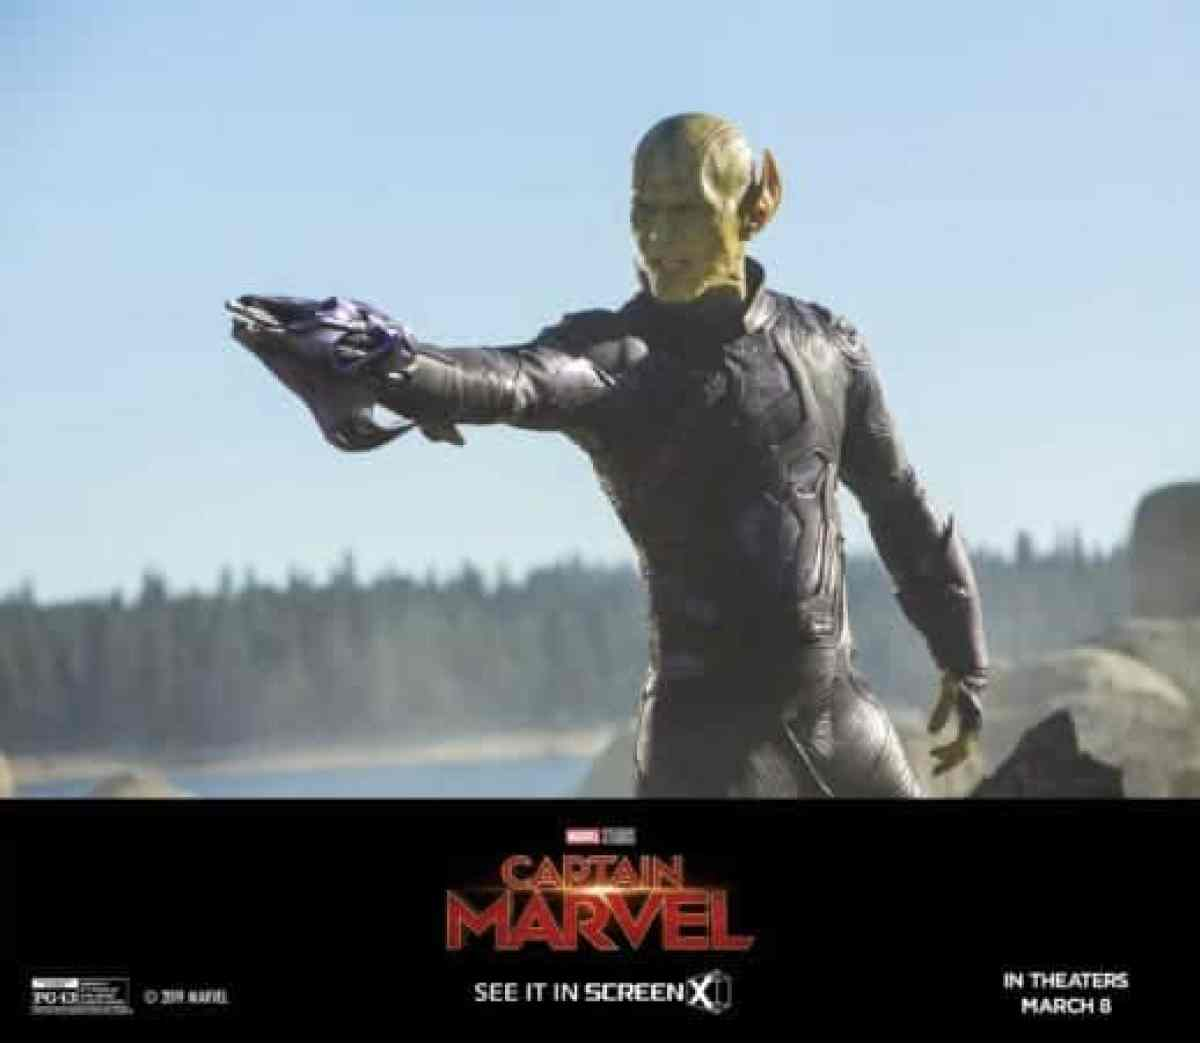 Captain Marvel screenx